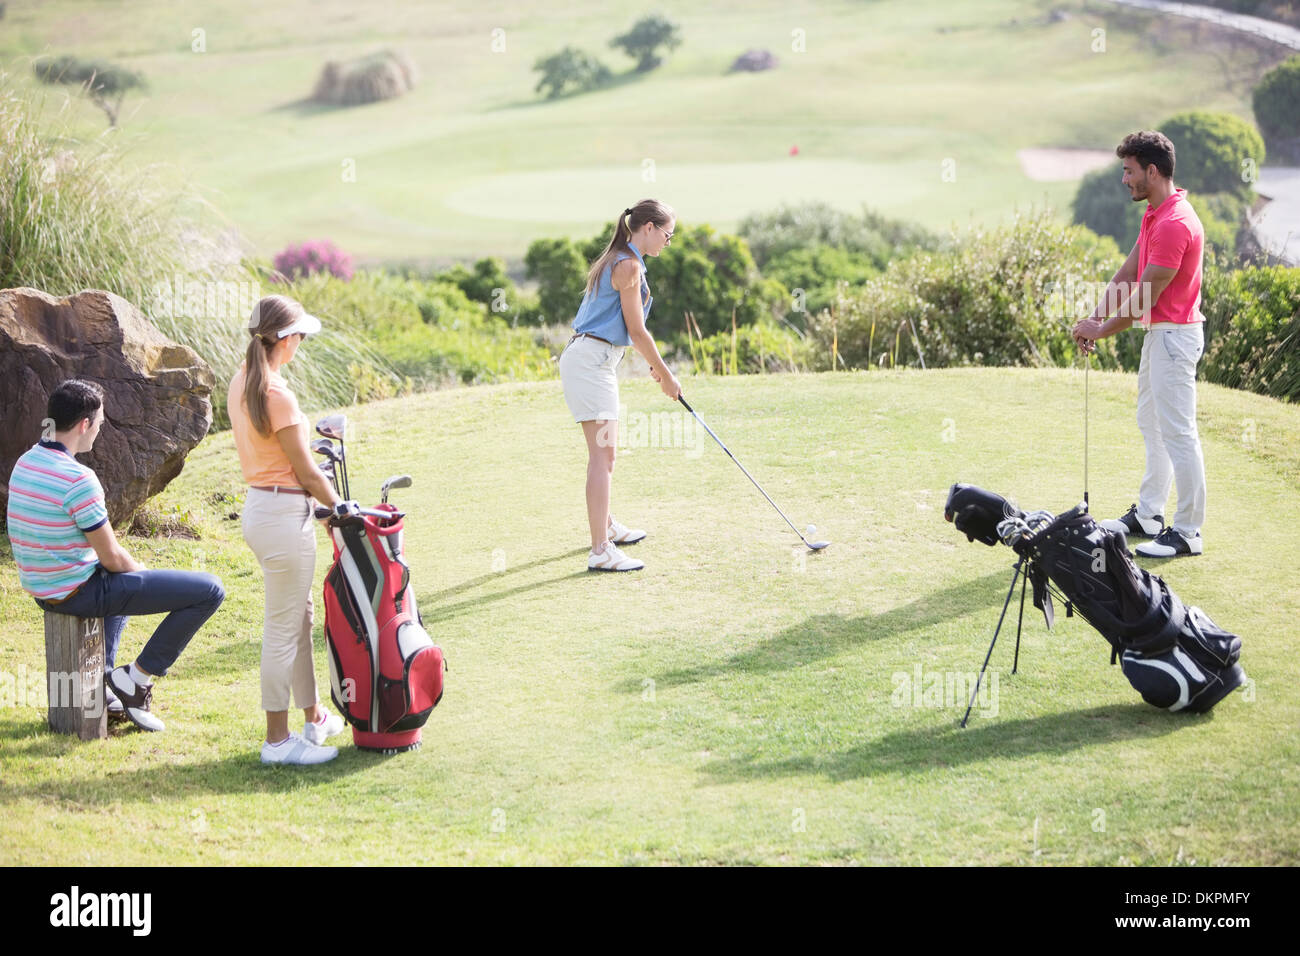 Friends watching woman teeing off on golf course - Stock Image